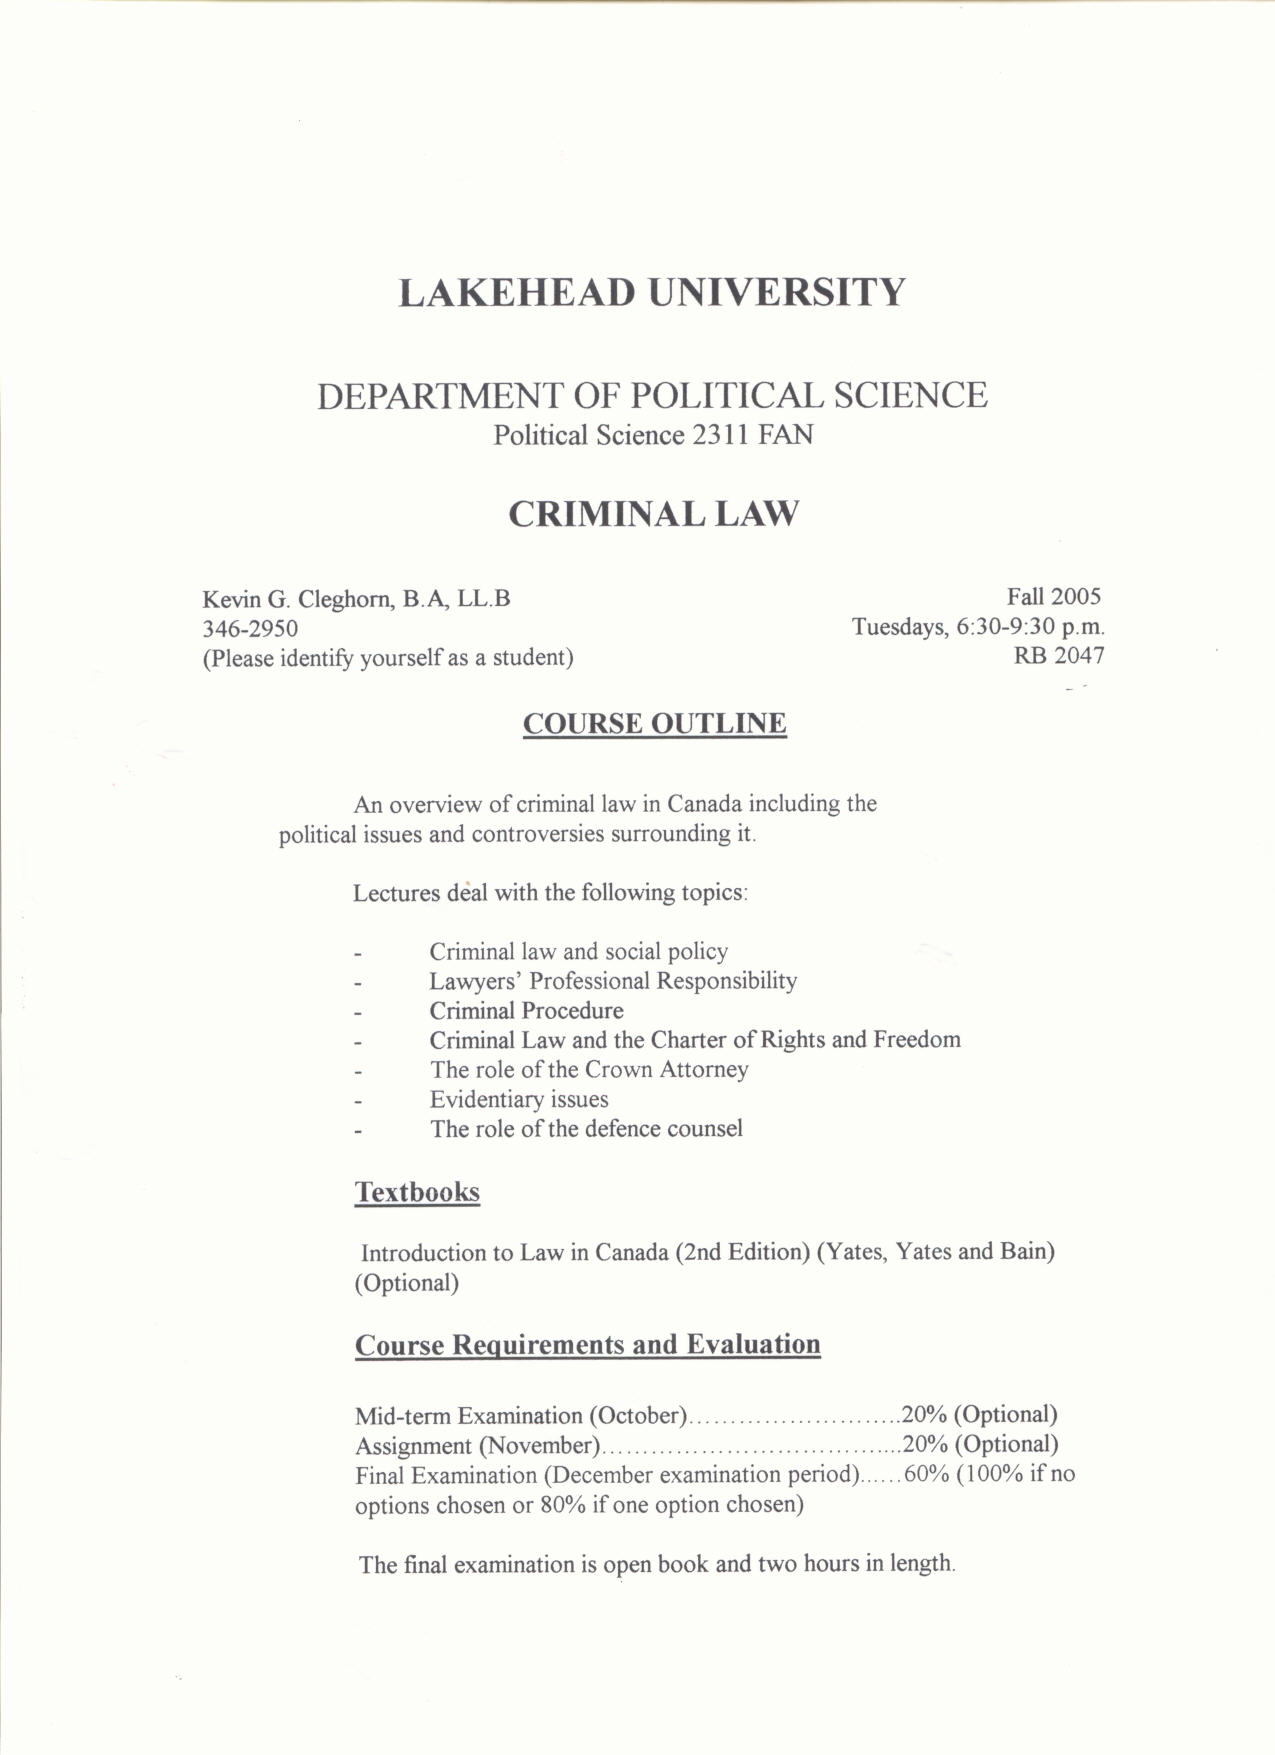 political science essay science essay an socialsci lakehead lakehead universitypolitical science fa criminal law